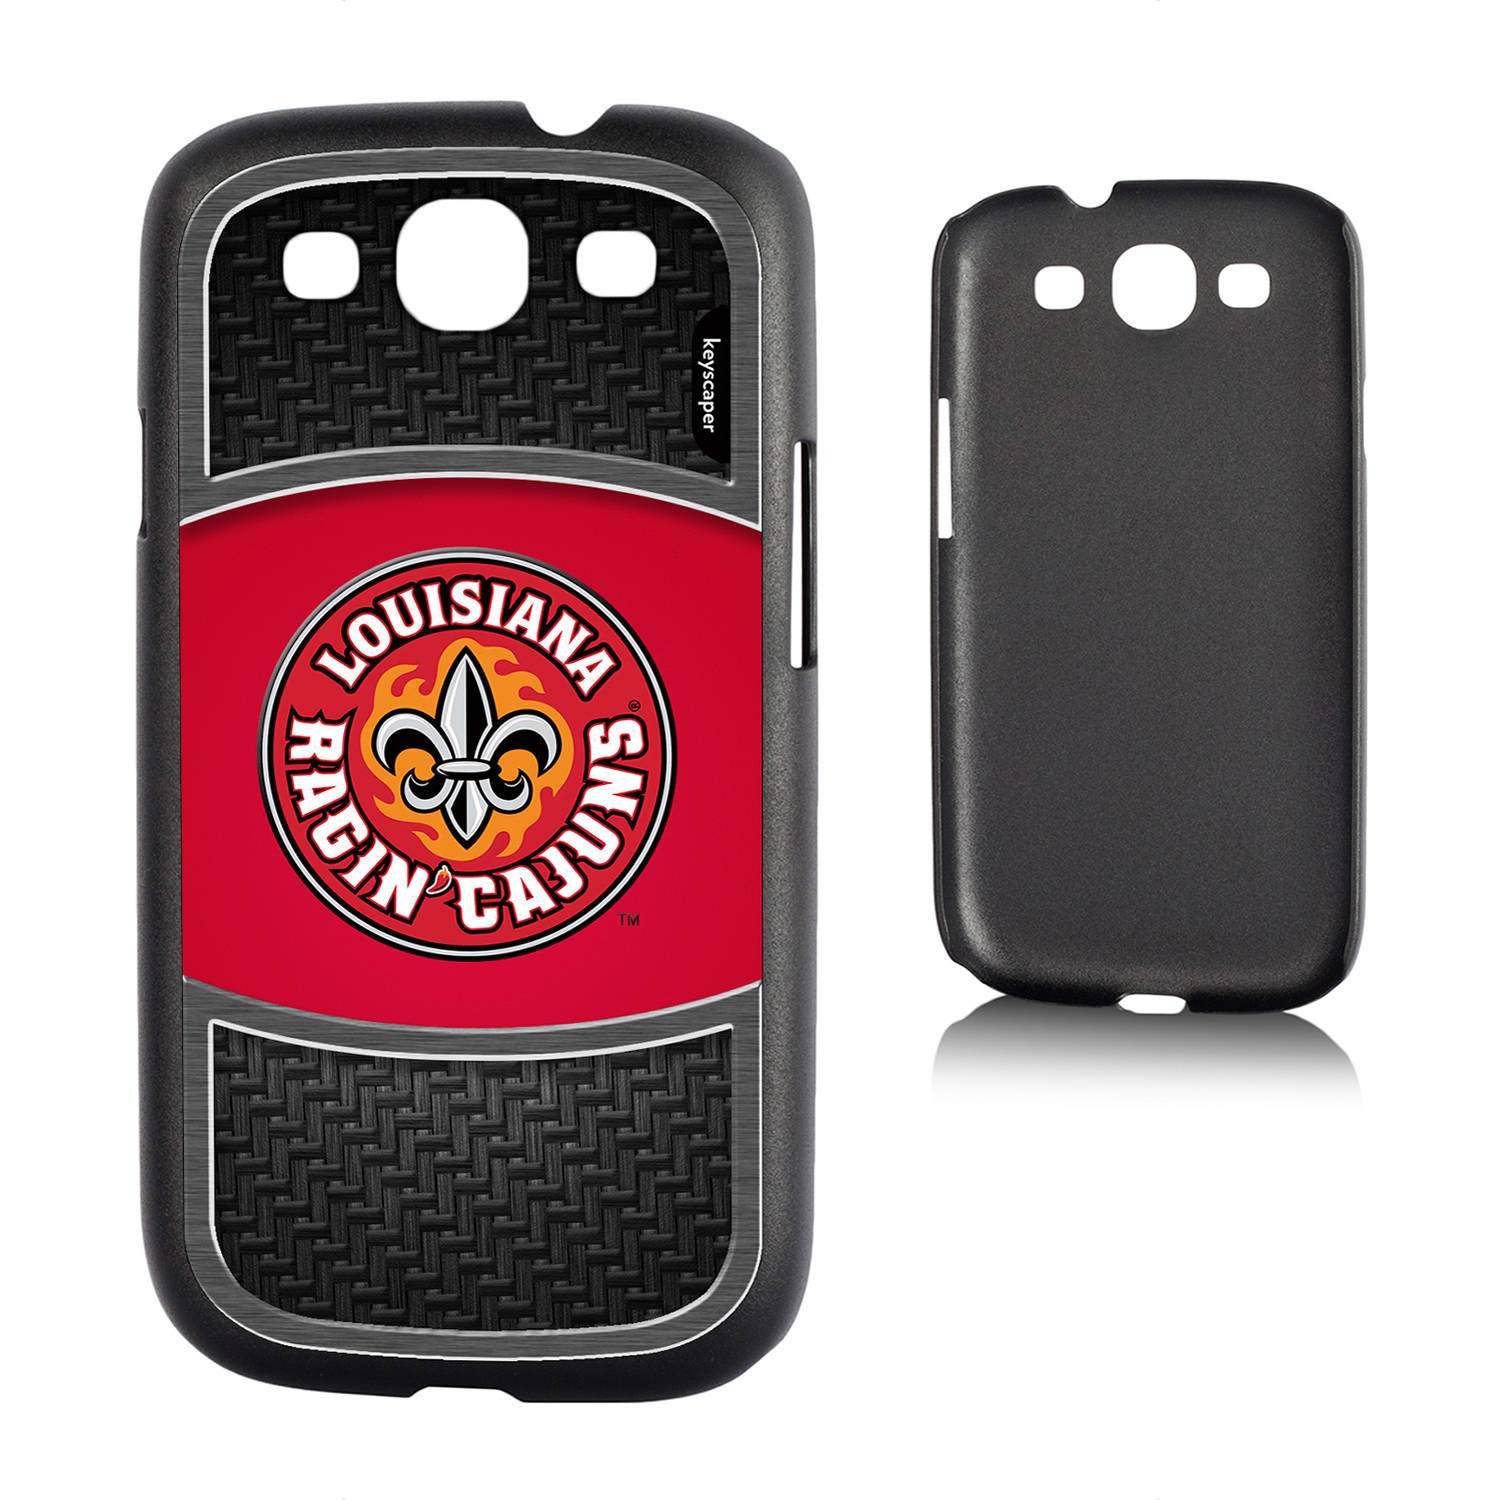 Louisiana Lafayette Ragin' Cajuns Galaxy S3 Slim Case